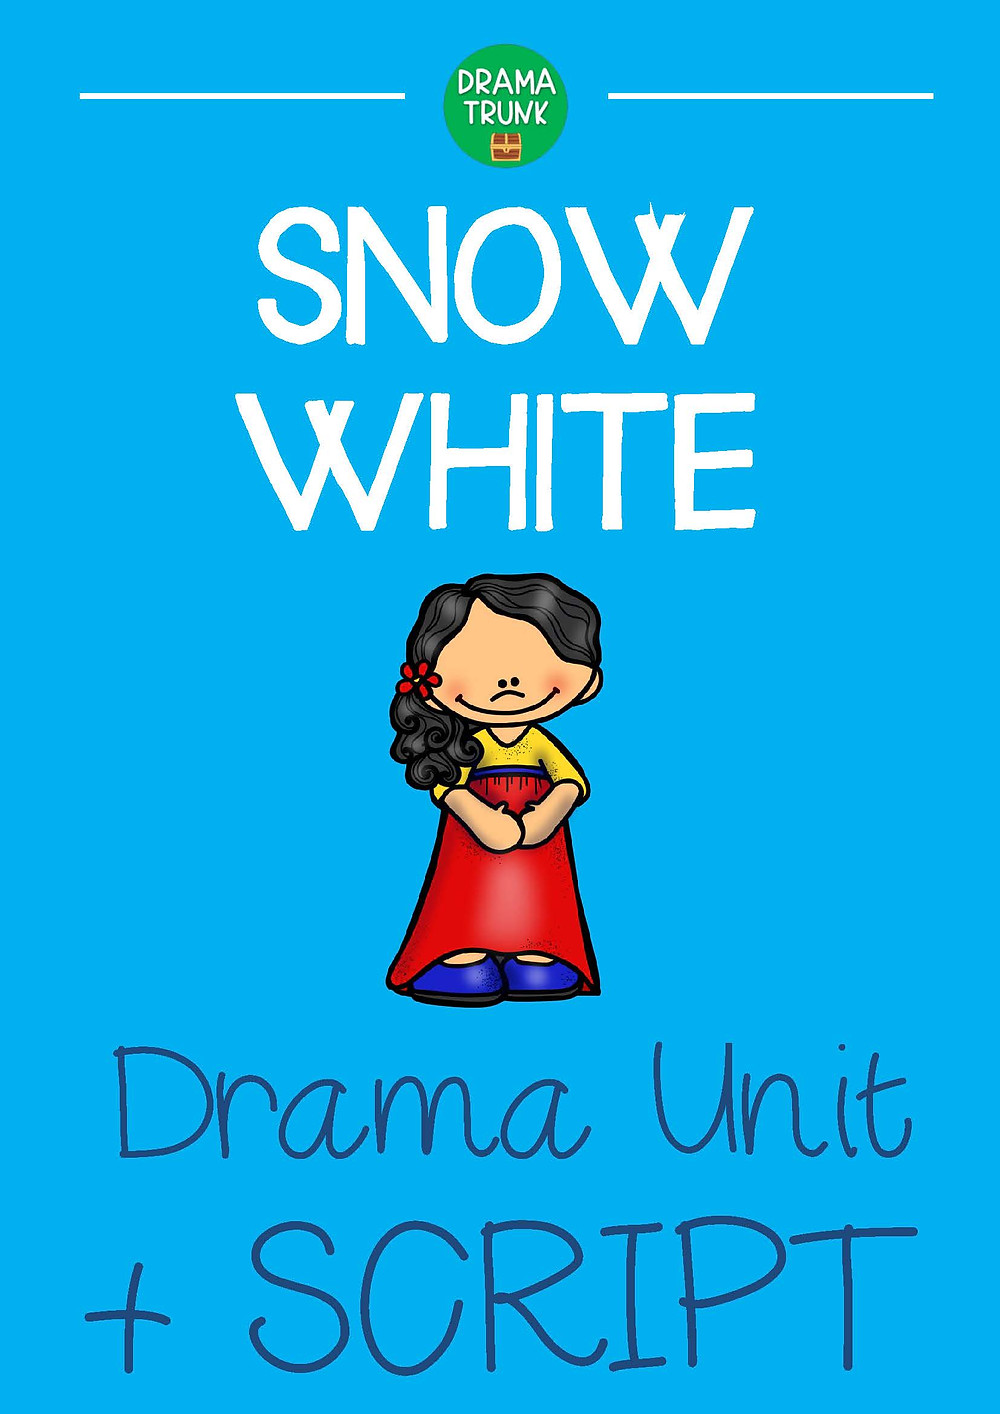 Snow White Lesson Plans and Acting Scripts for Kids